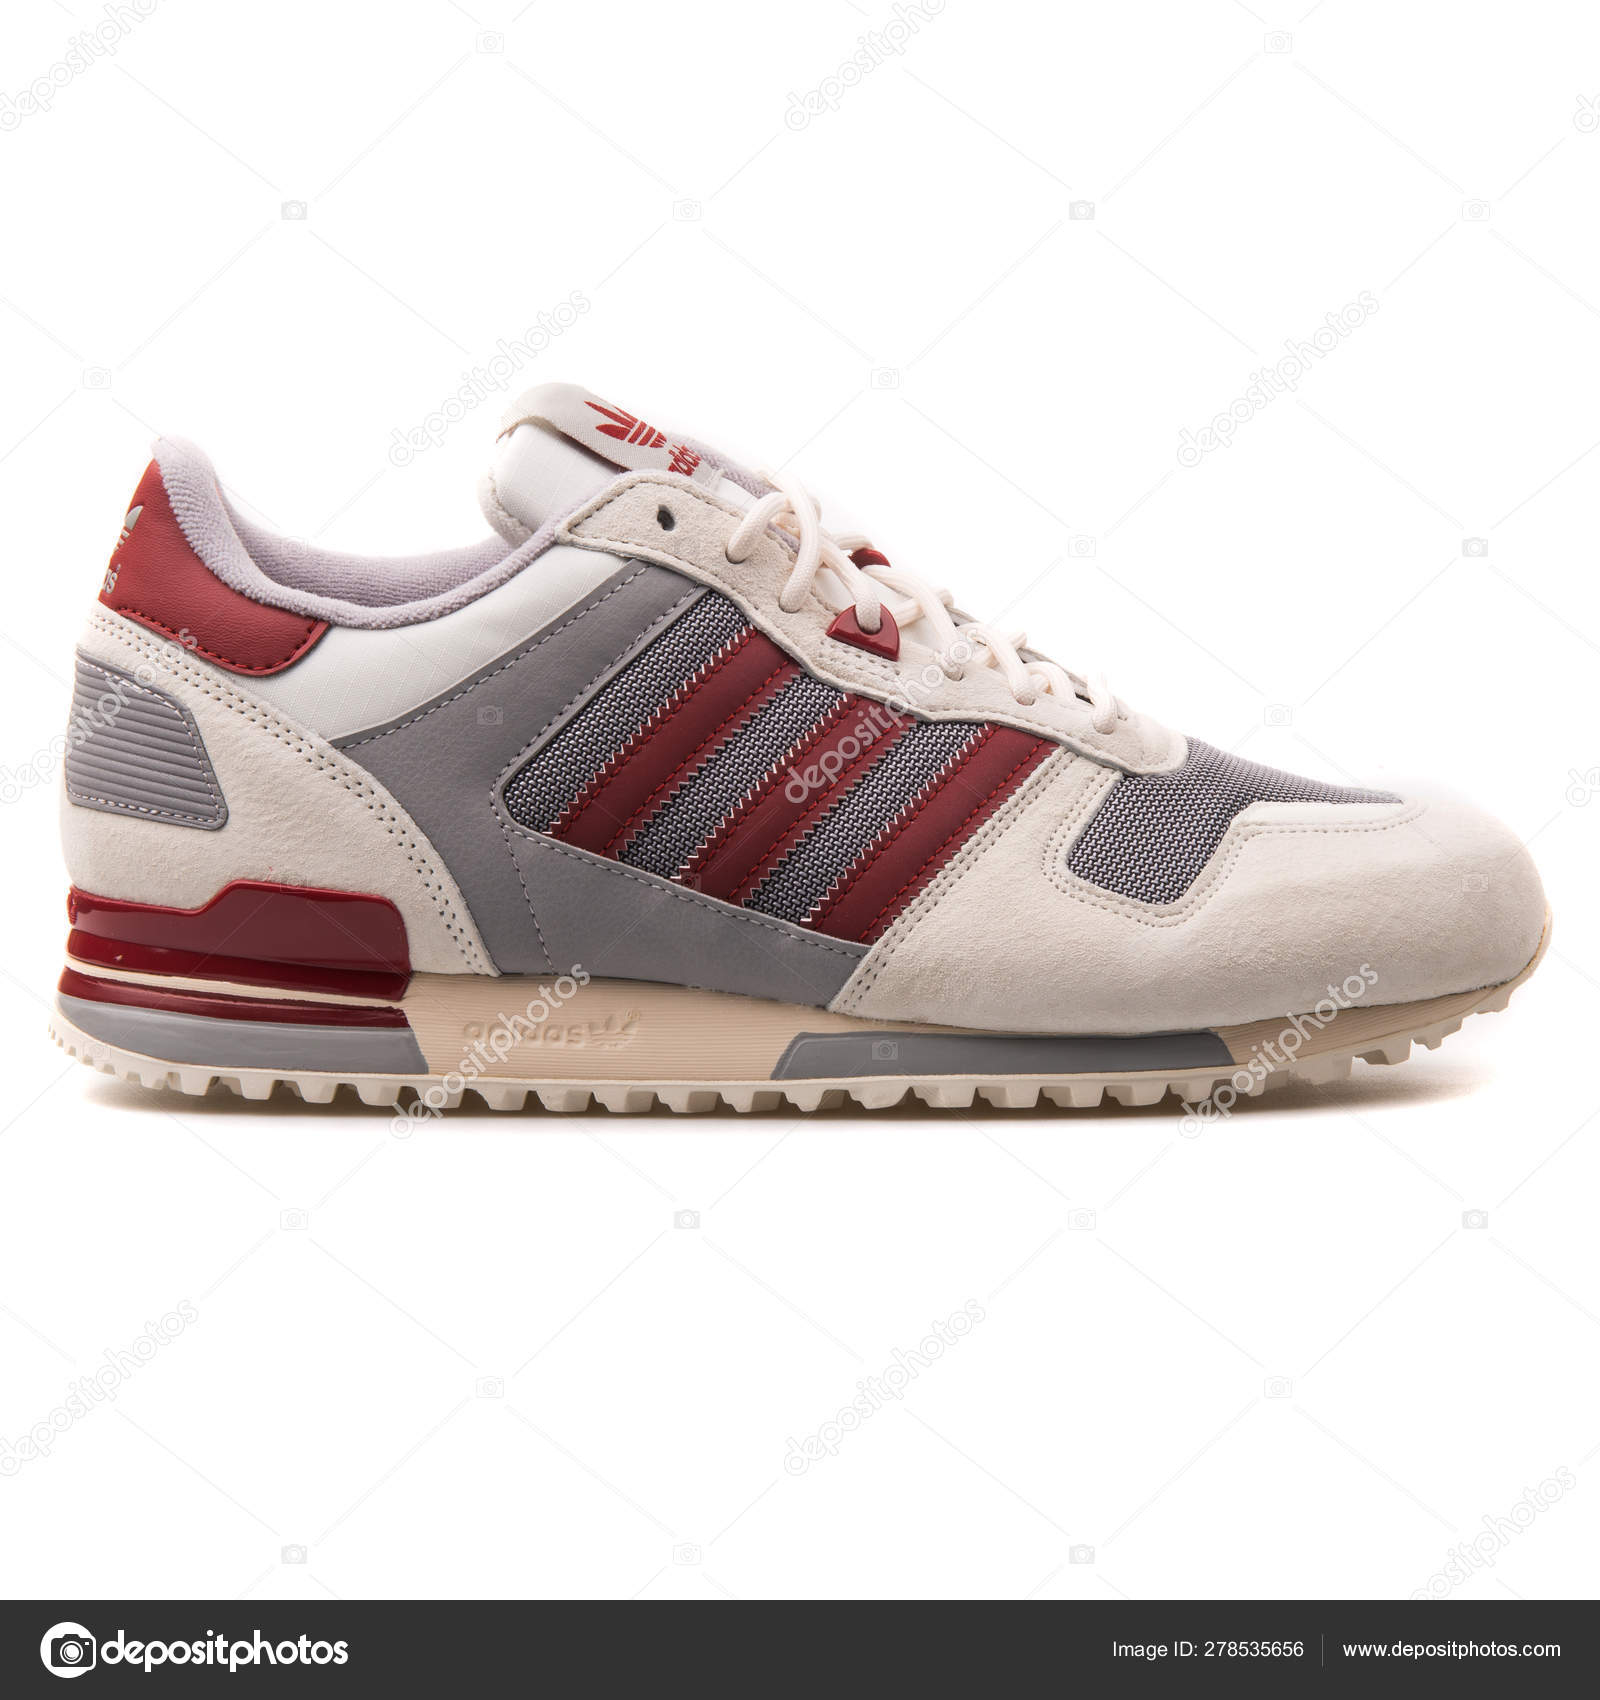 Adidas ZX 700 white, grey and red